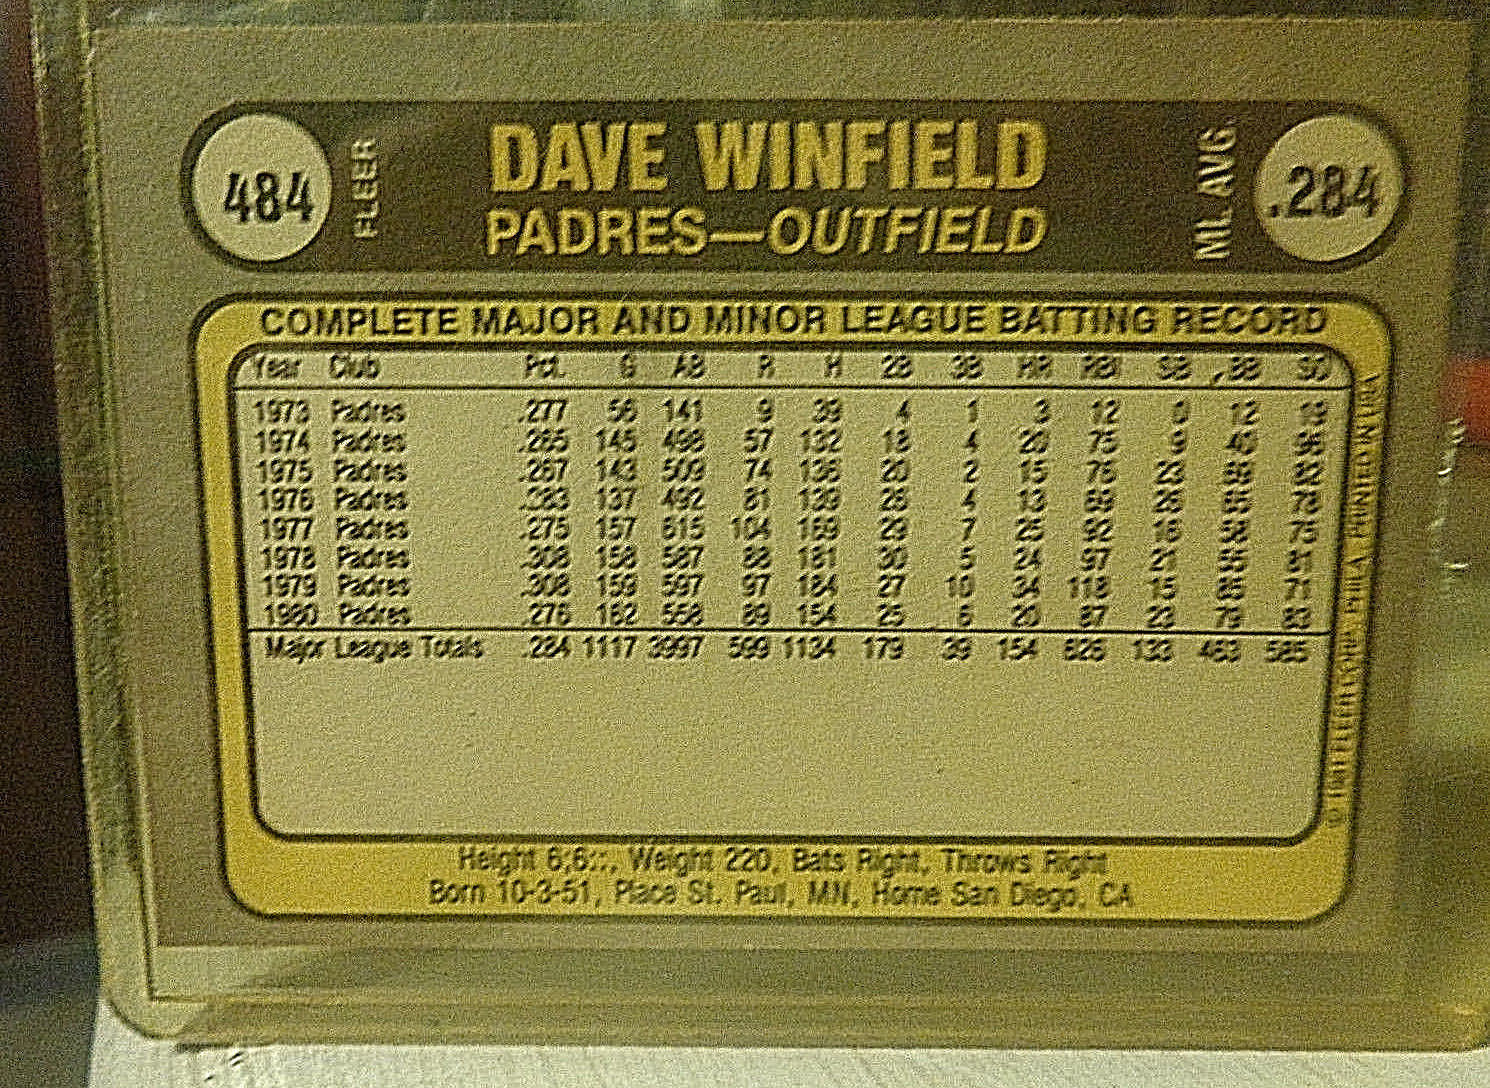 1981 FLEER BASEBALL CARD  # 484 DAVE WINFIELD  San Diego Padres  NM